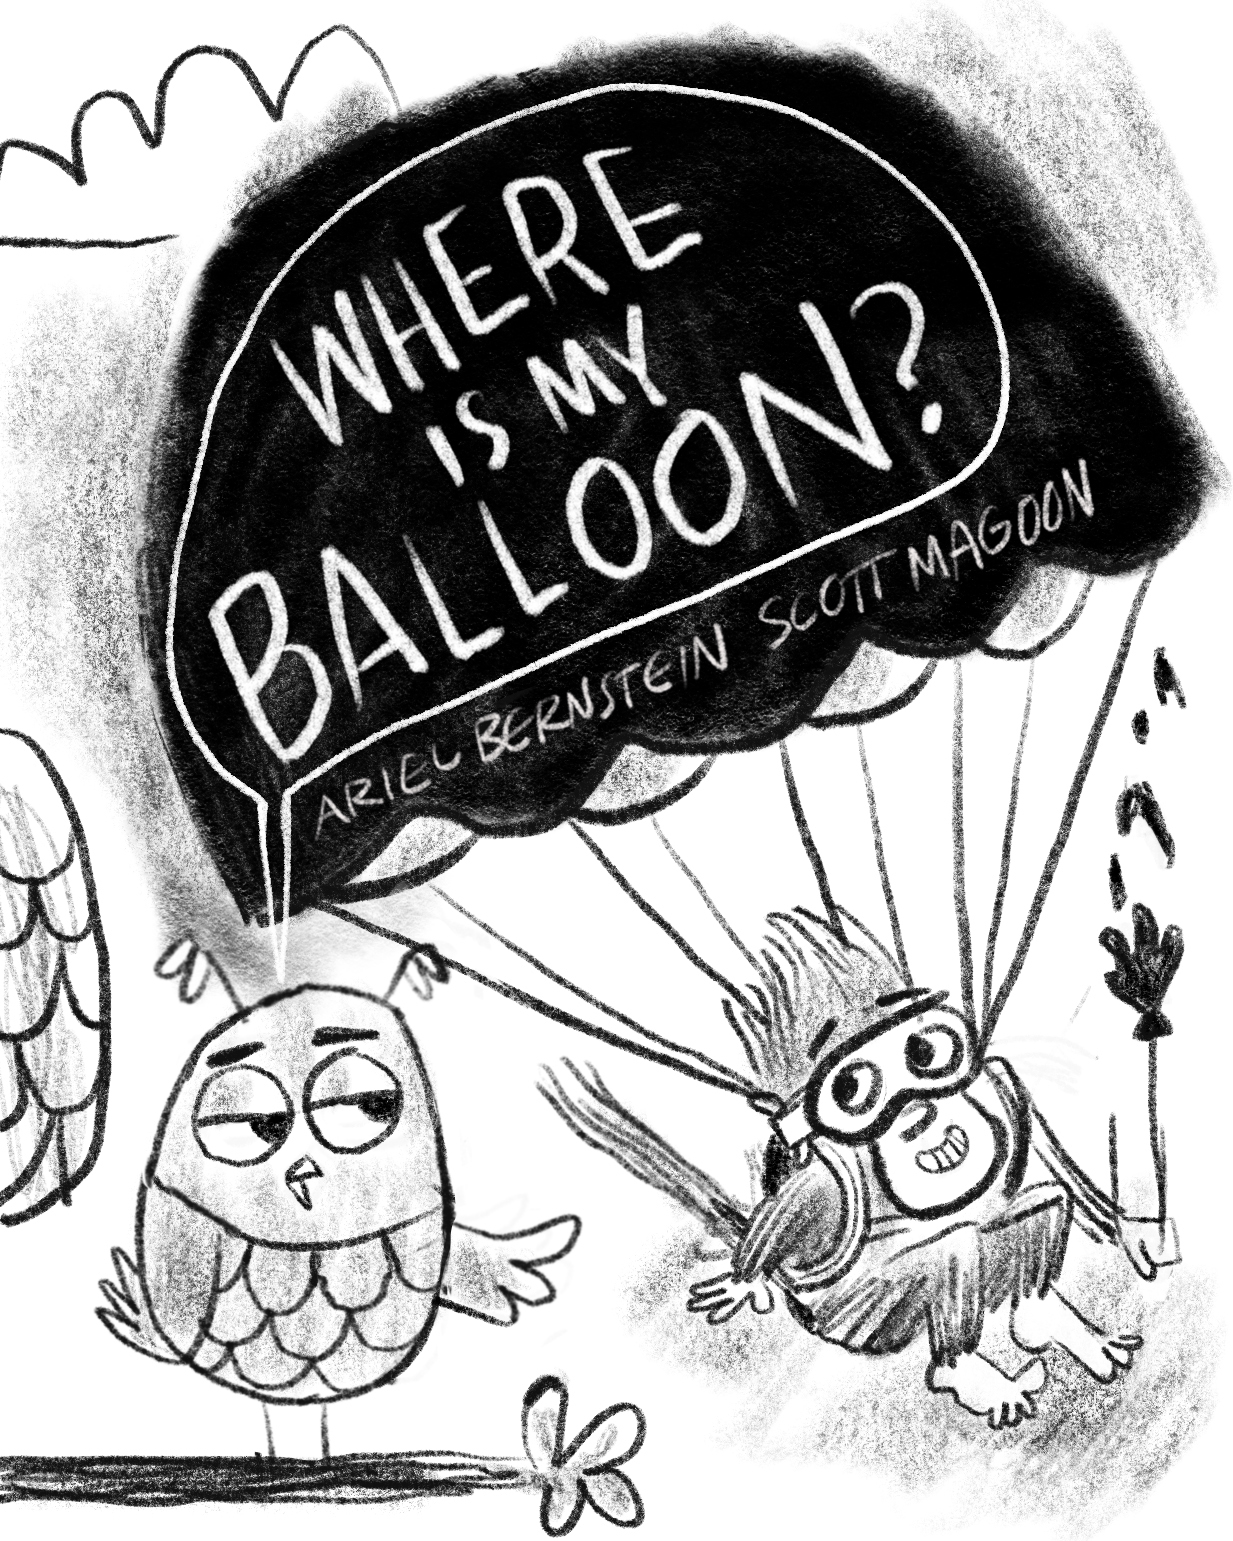 Cover sketch! Originally we were trying to replicate I HAVE A BALLOON's iconic red shape on the cover, hence the parachute.